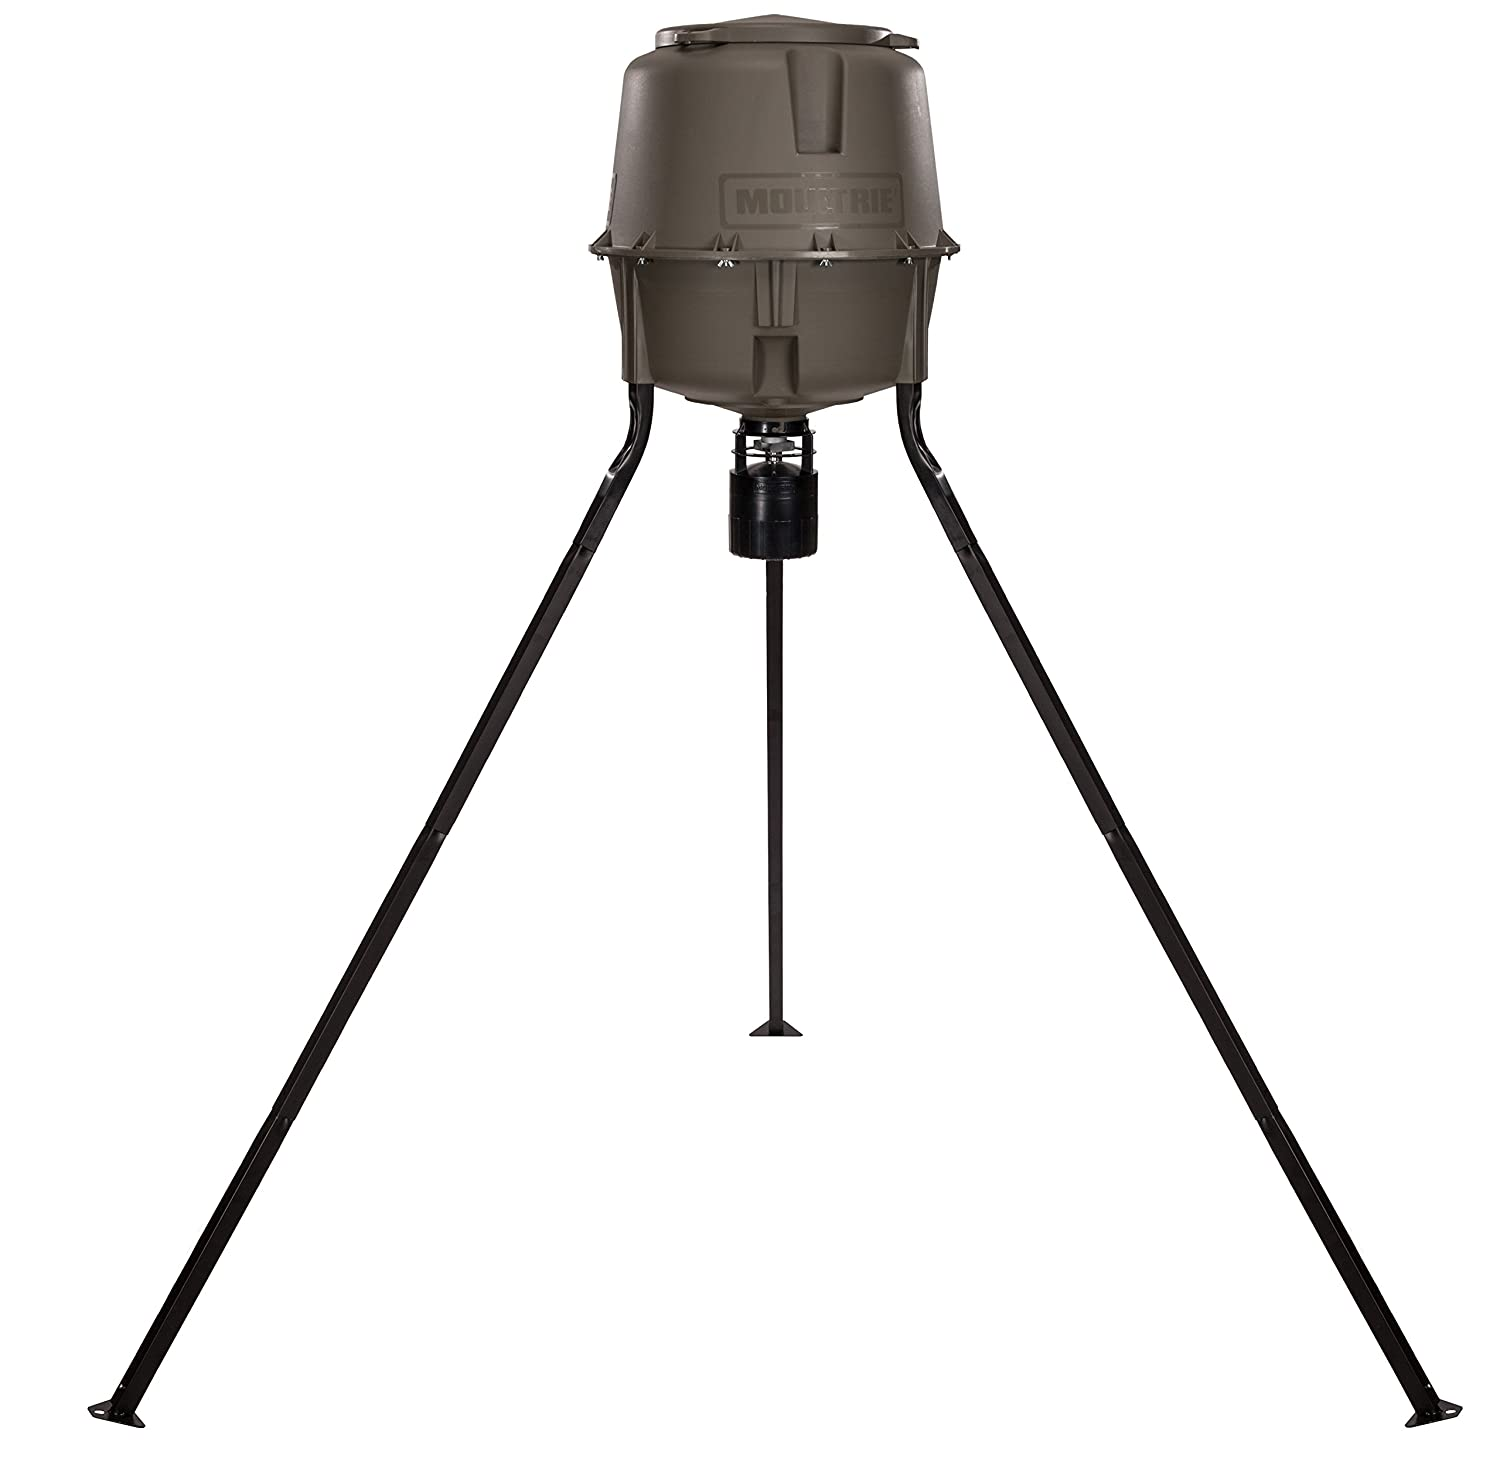 magnum band housing deer dp amazon outdoors sports metal moultrie belly tripod pro gallon com all feeder